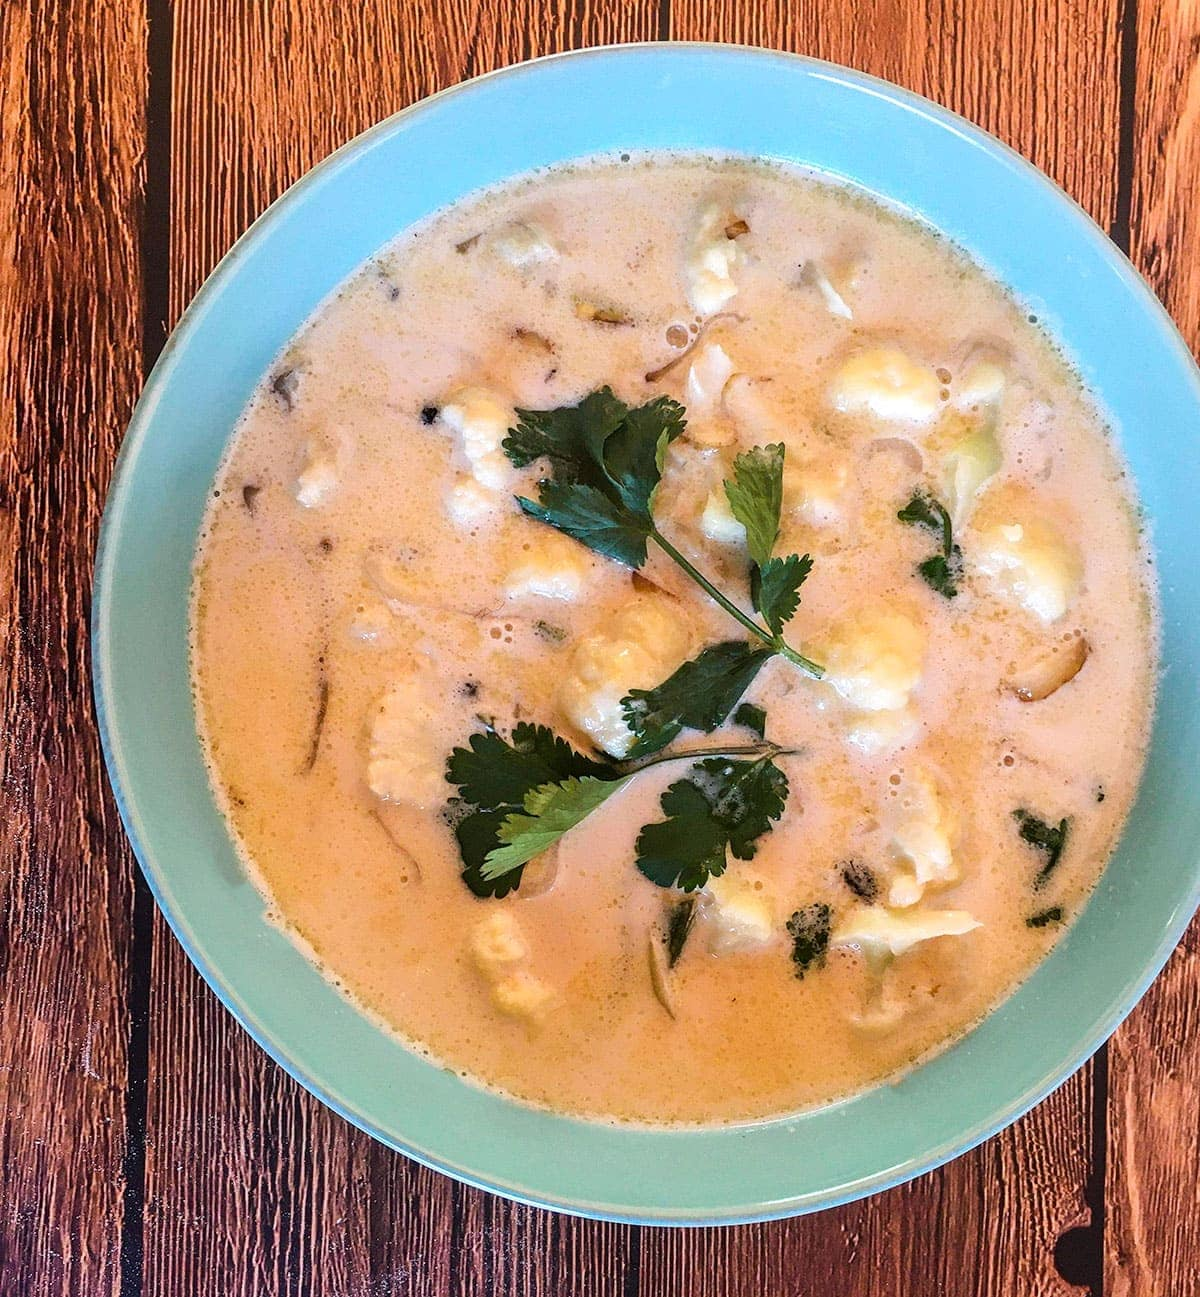 Overlay coconut stew in a blue bowl on a brown background